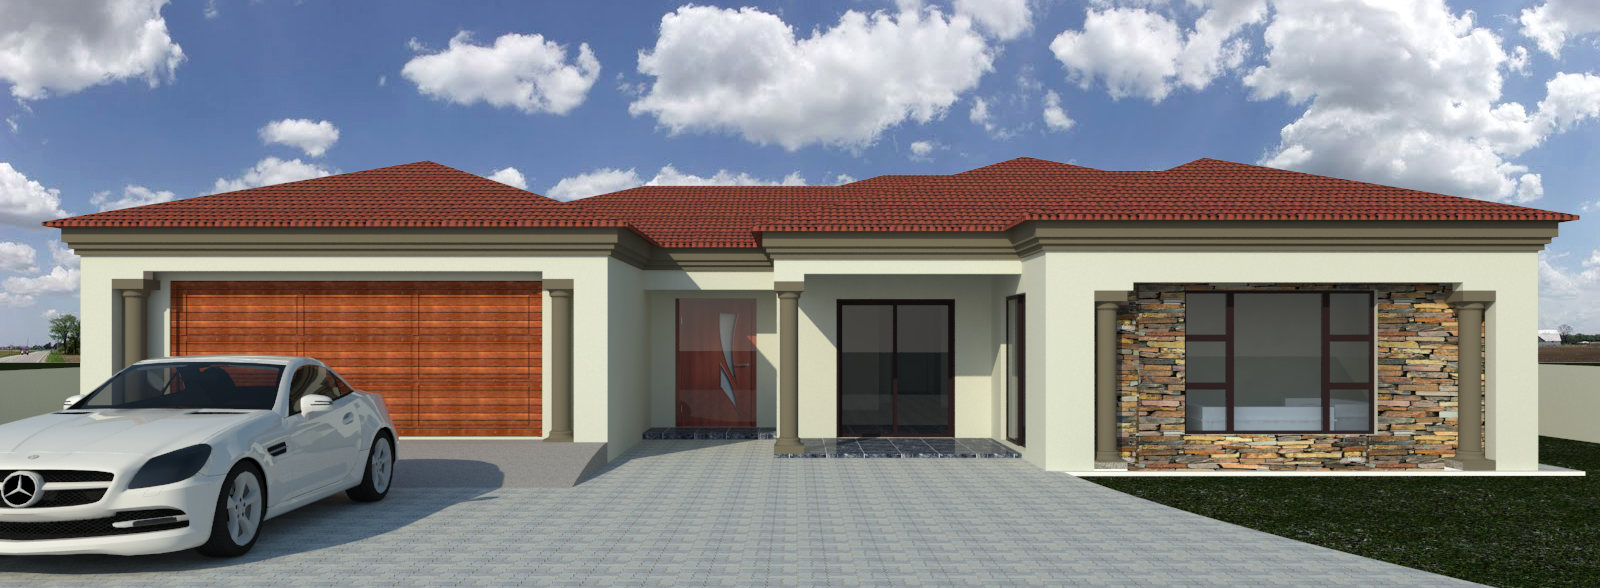 My House Plans South Africa With My House Plans South Africa Due To Together With Insp House Plans South Africa Tuscan House Plans House Plans With Photos